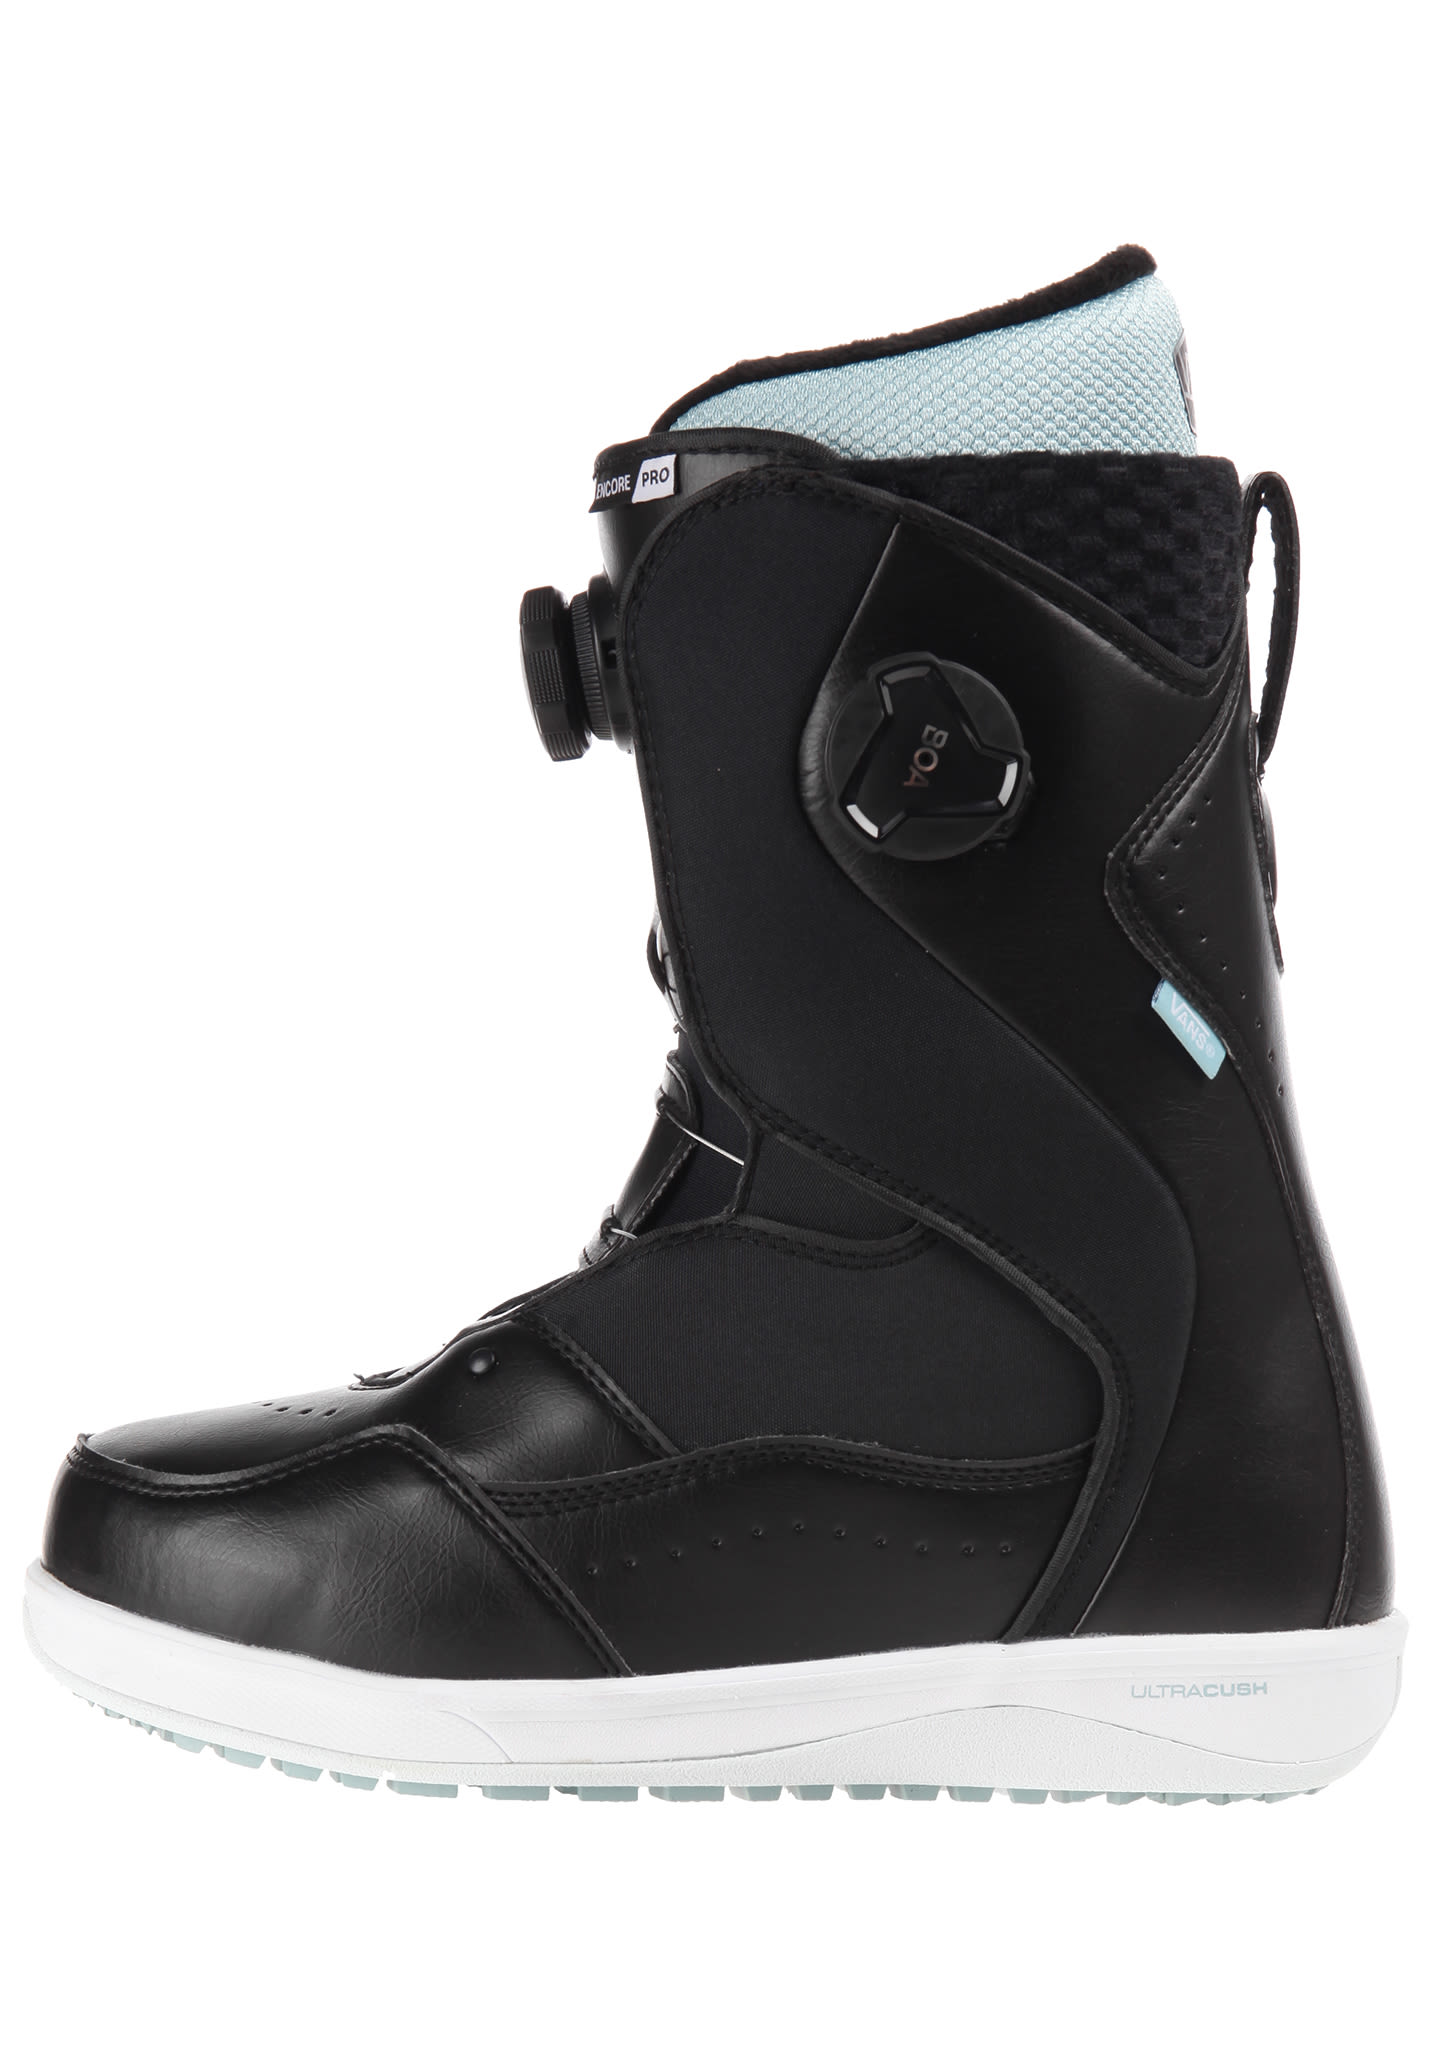 158835bbec Vans Encore Pro - Snowboard Boots for Women - Black - Planet Sports